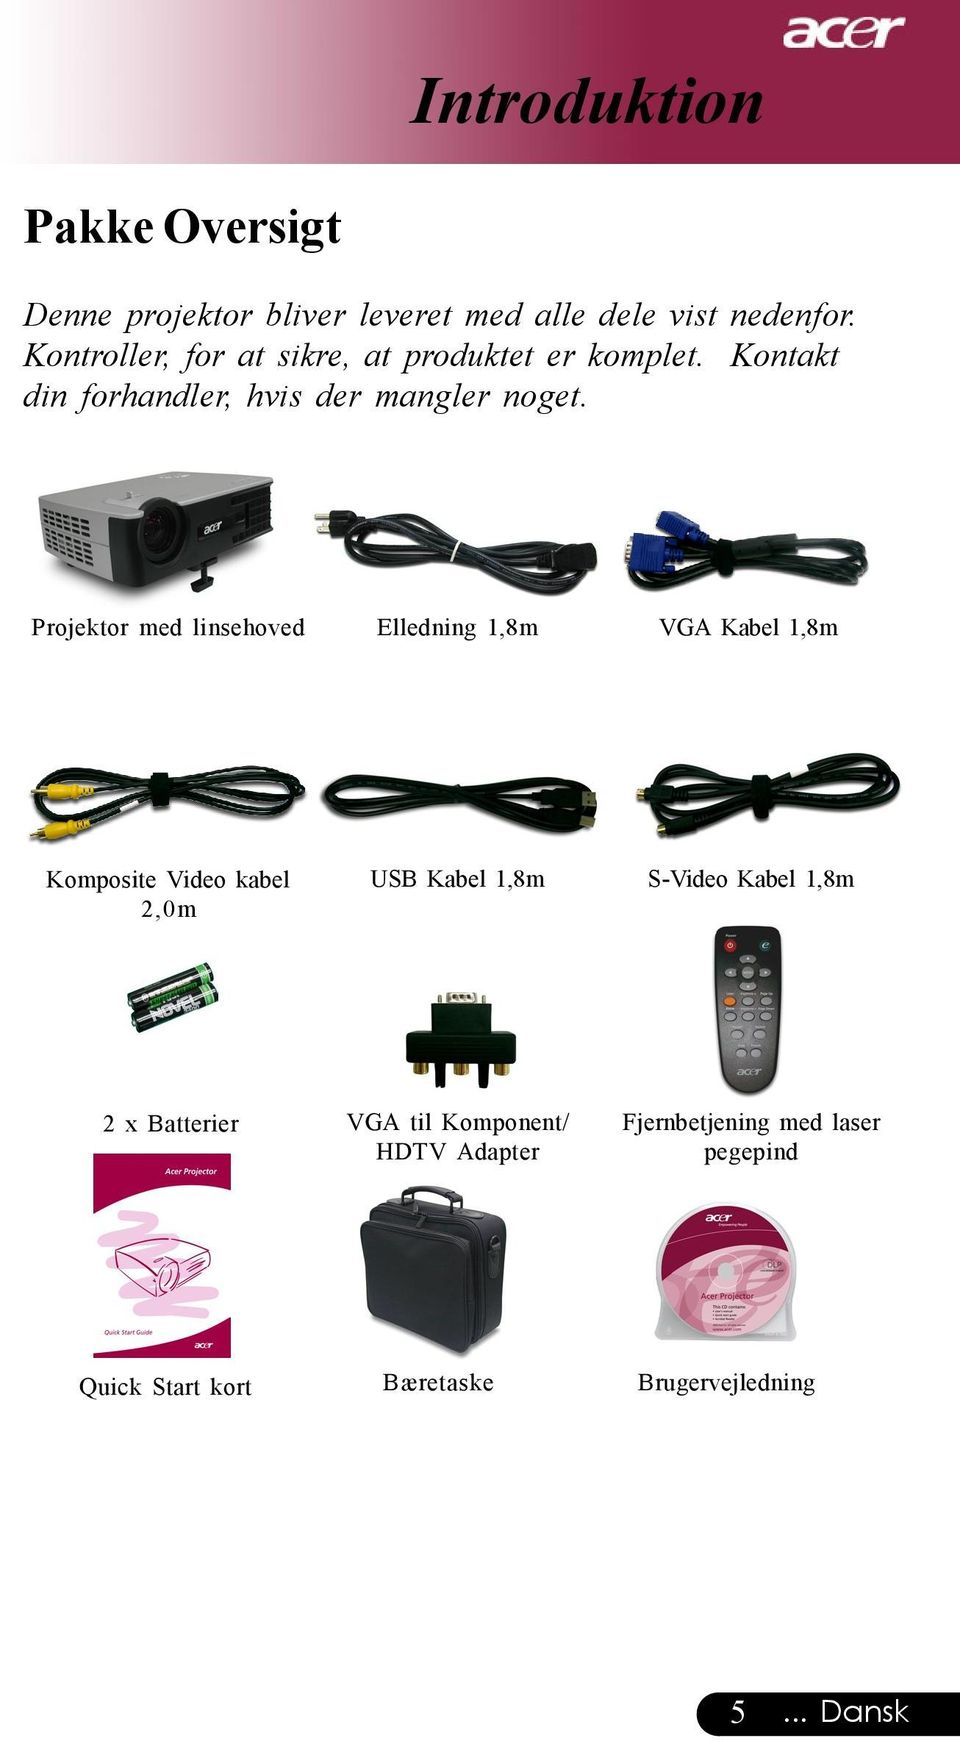 Projektor med linsehoved Elledning 1,8m VGA Kabel 1,8m Komposite Video kabel 2,0m USB Kabel 1,8m S-Video